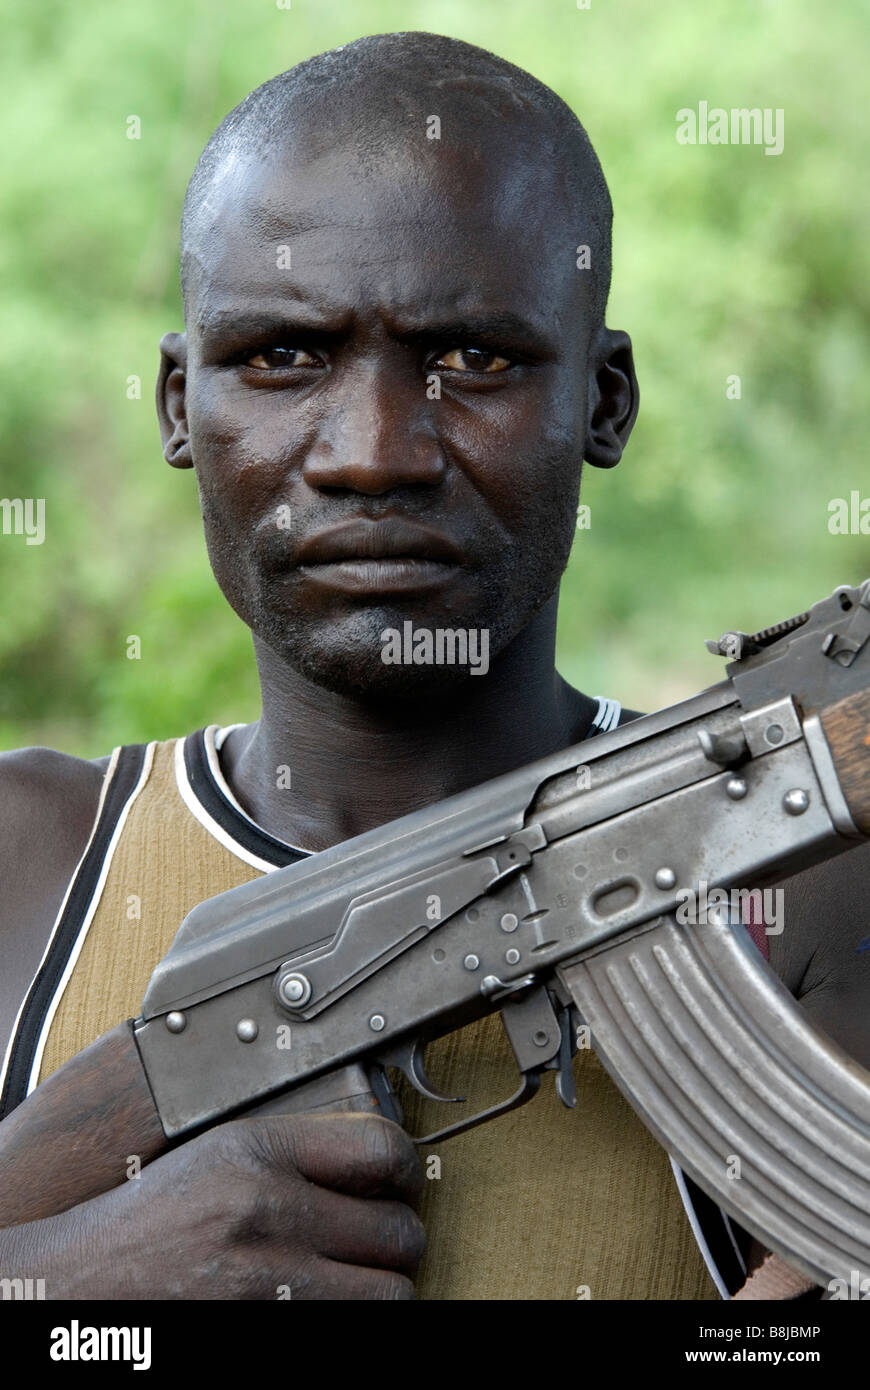 Mursi boy in the Lower Omo Valley of Ethiopia, Stock Photo